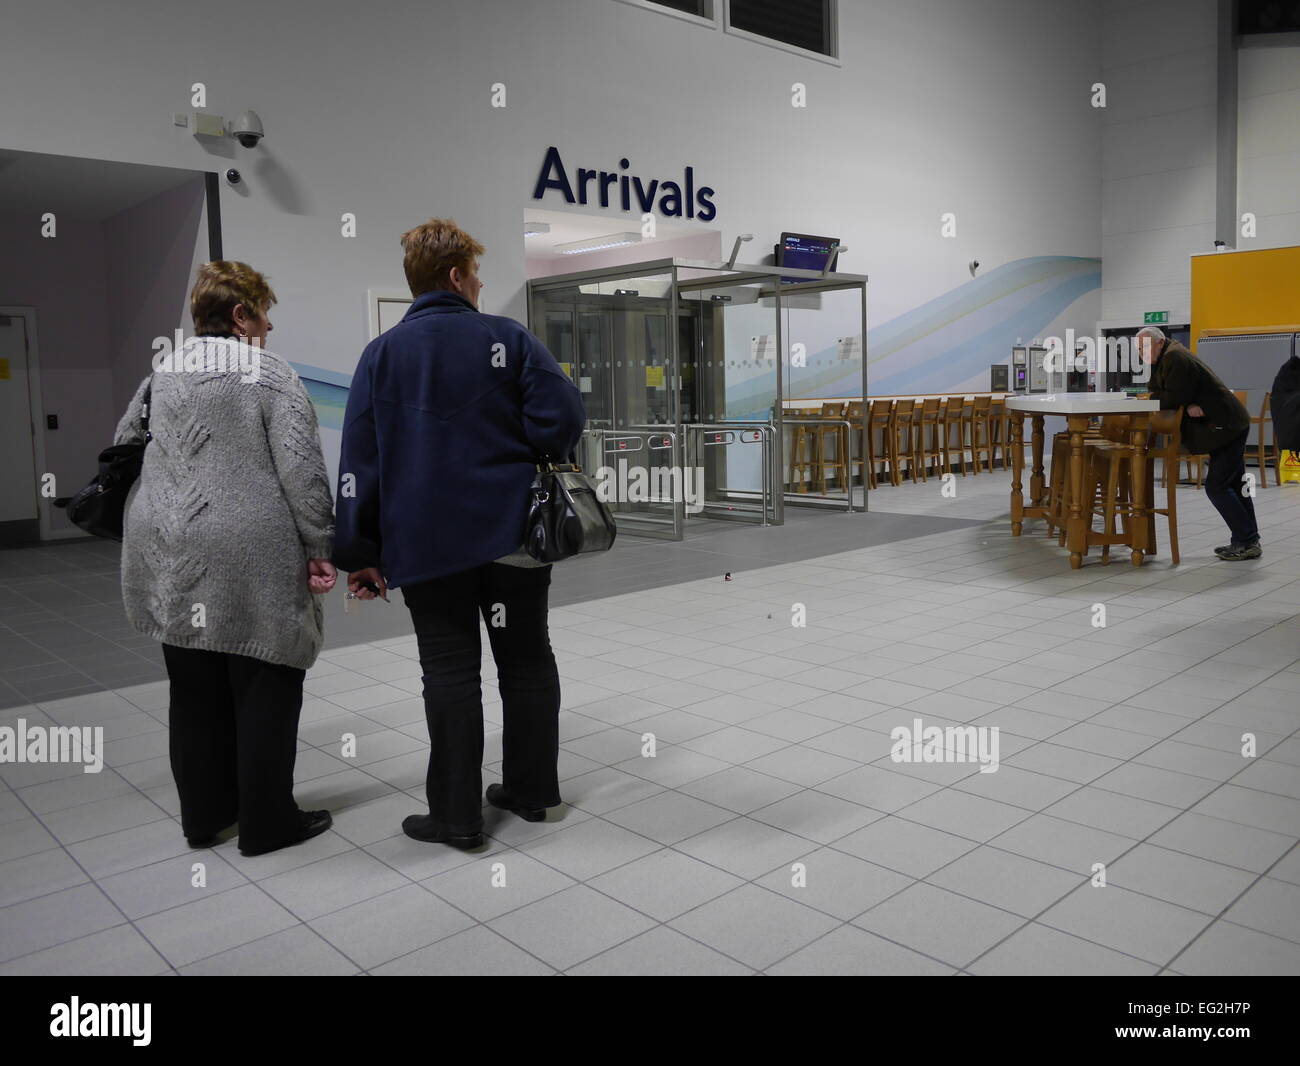 London Southend Airport Arrivals area - Stock Image